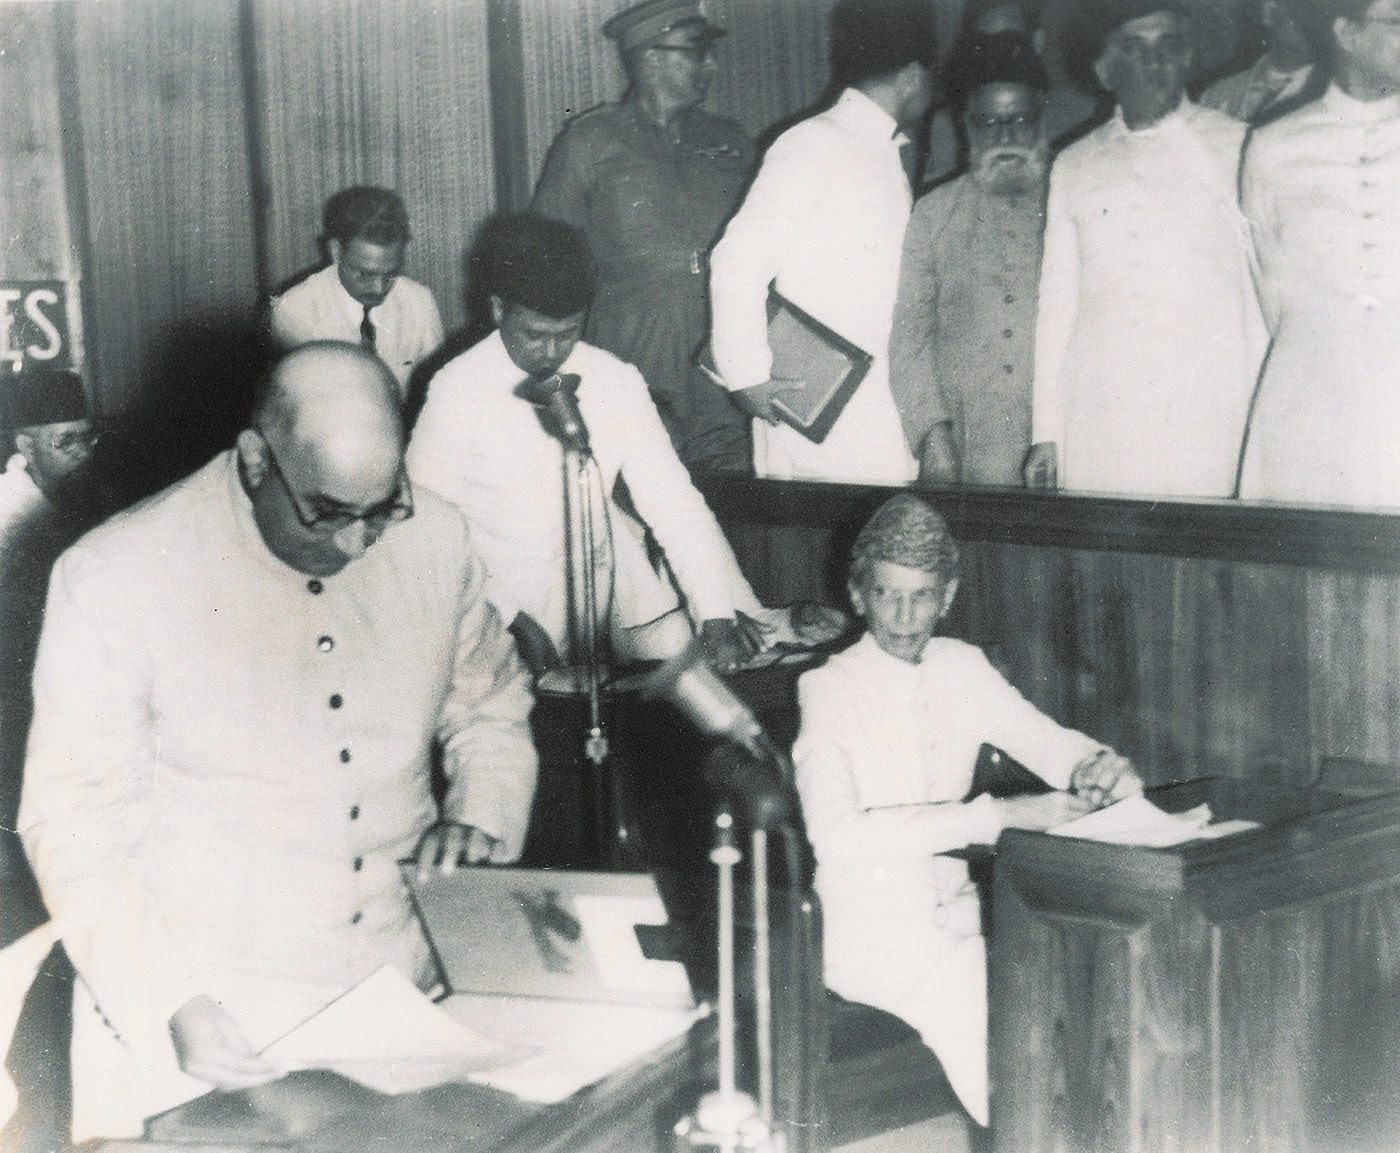 Nawabzada Liaquat Ali Khan casts his eye over the election forms that result in the elevation of Quaid-i-Azam Mohammad Ali Jinnah to the presidentship of the Constituent Assembly of Pakistan at its first session on August 11, 1947, in Karachi. —​ Dawn/White Star Archives